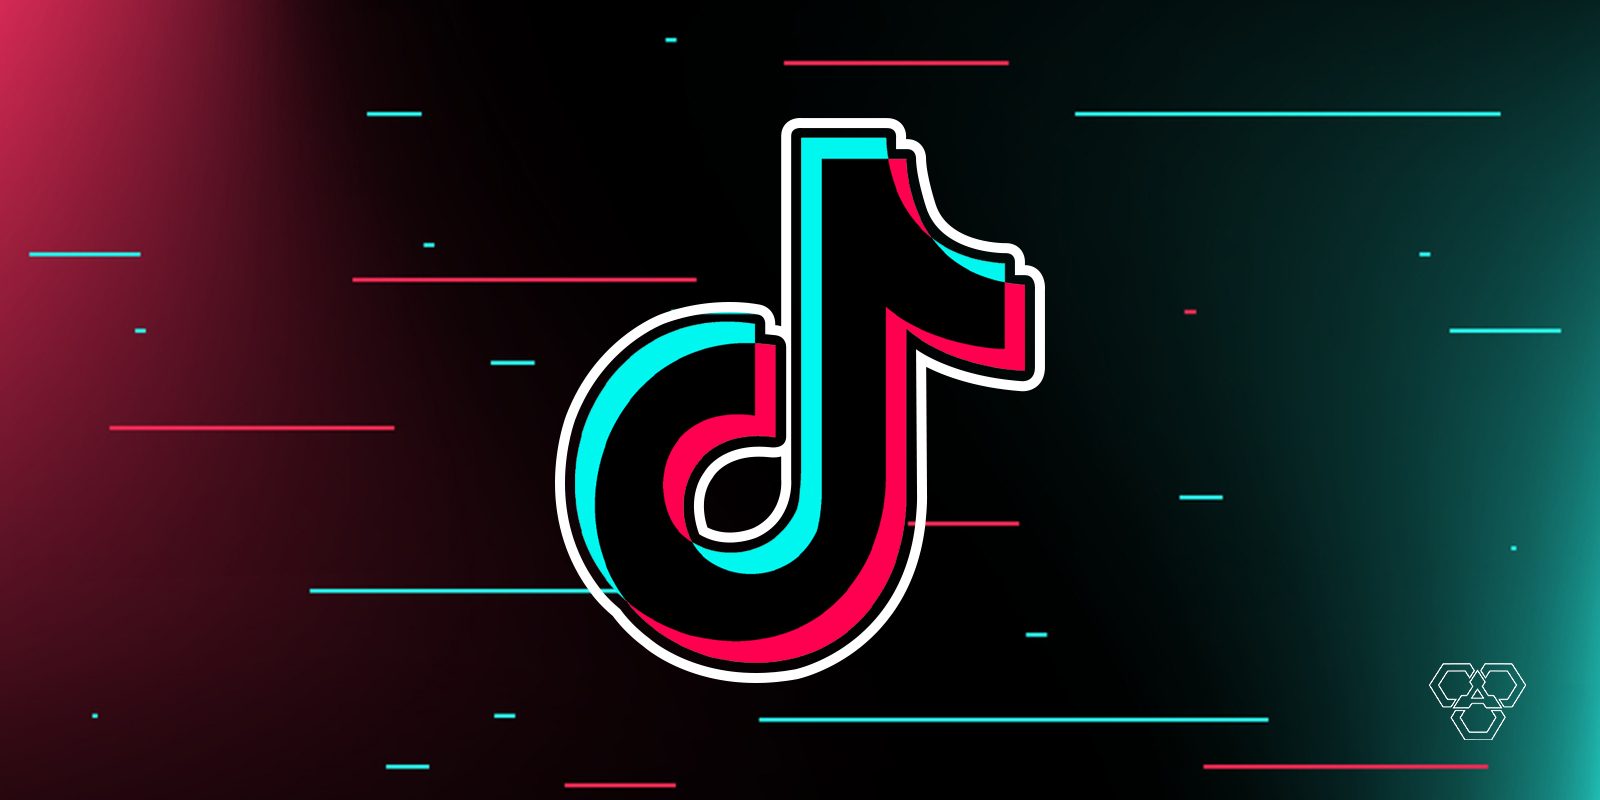 Did you know that you can purchase views for TikTok and become popular right now?